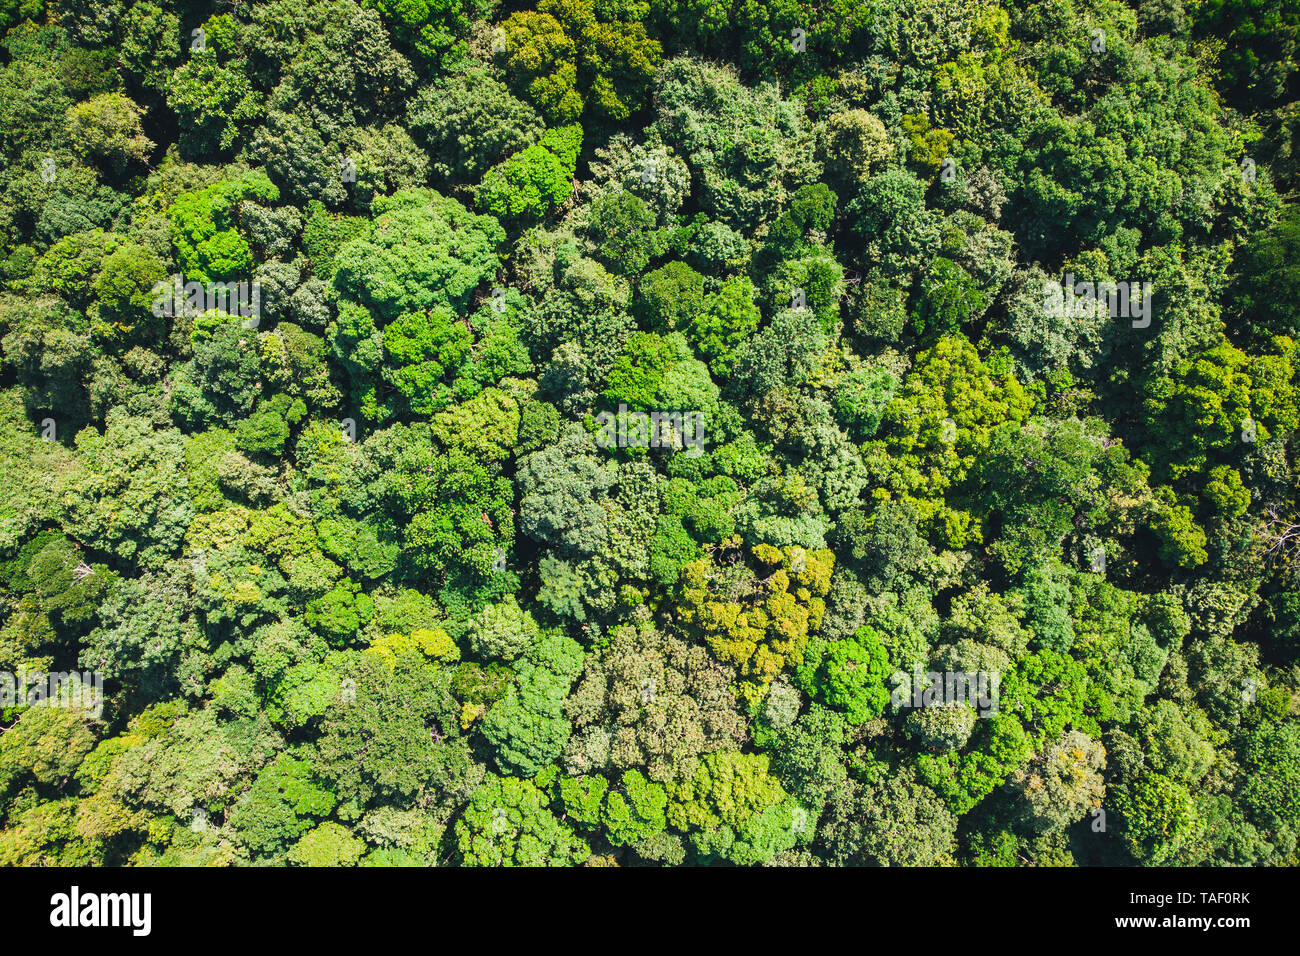 Aerial top view forest, Texture of forest view from above. background is green from jungle or rainforest. Stock Photo